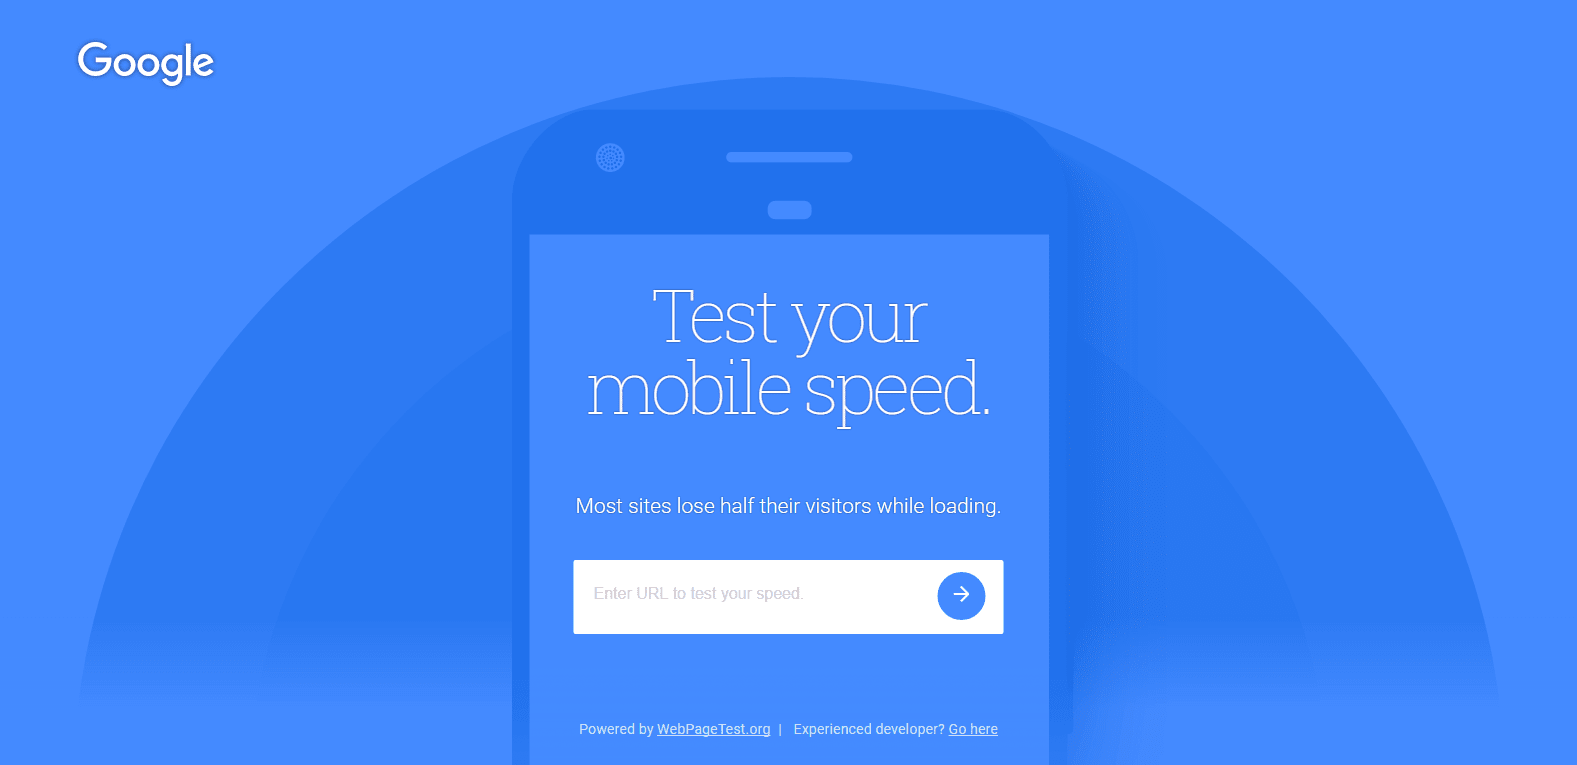 Test Your Blog Mobile Friendliness, Speed Using Google Text My Site